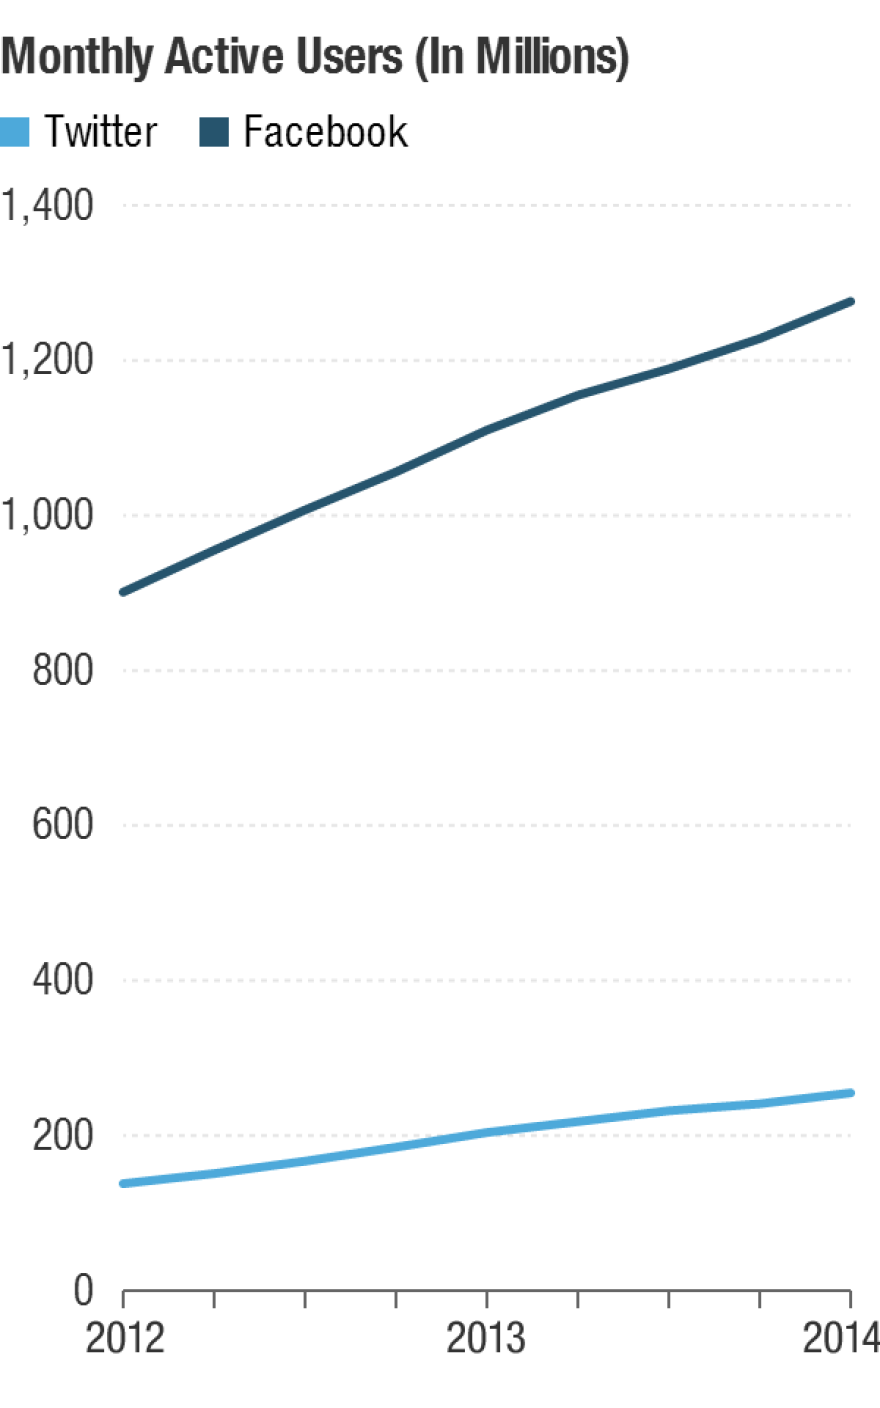 Facebook and Twitter monthly active users.